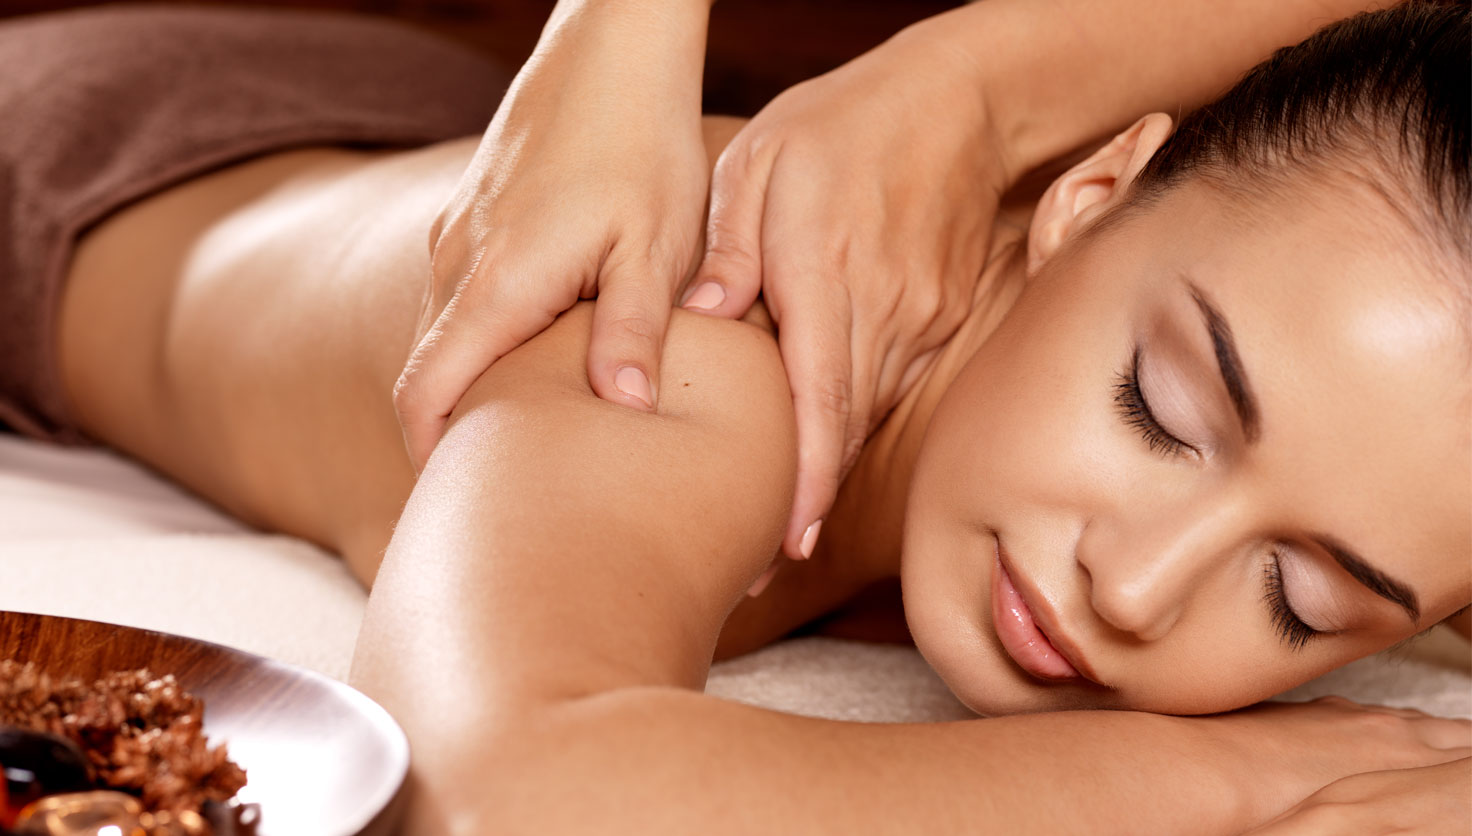 Don't Ignore Spa and Massage Therapies These are Very Important for Your Health